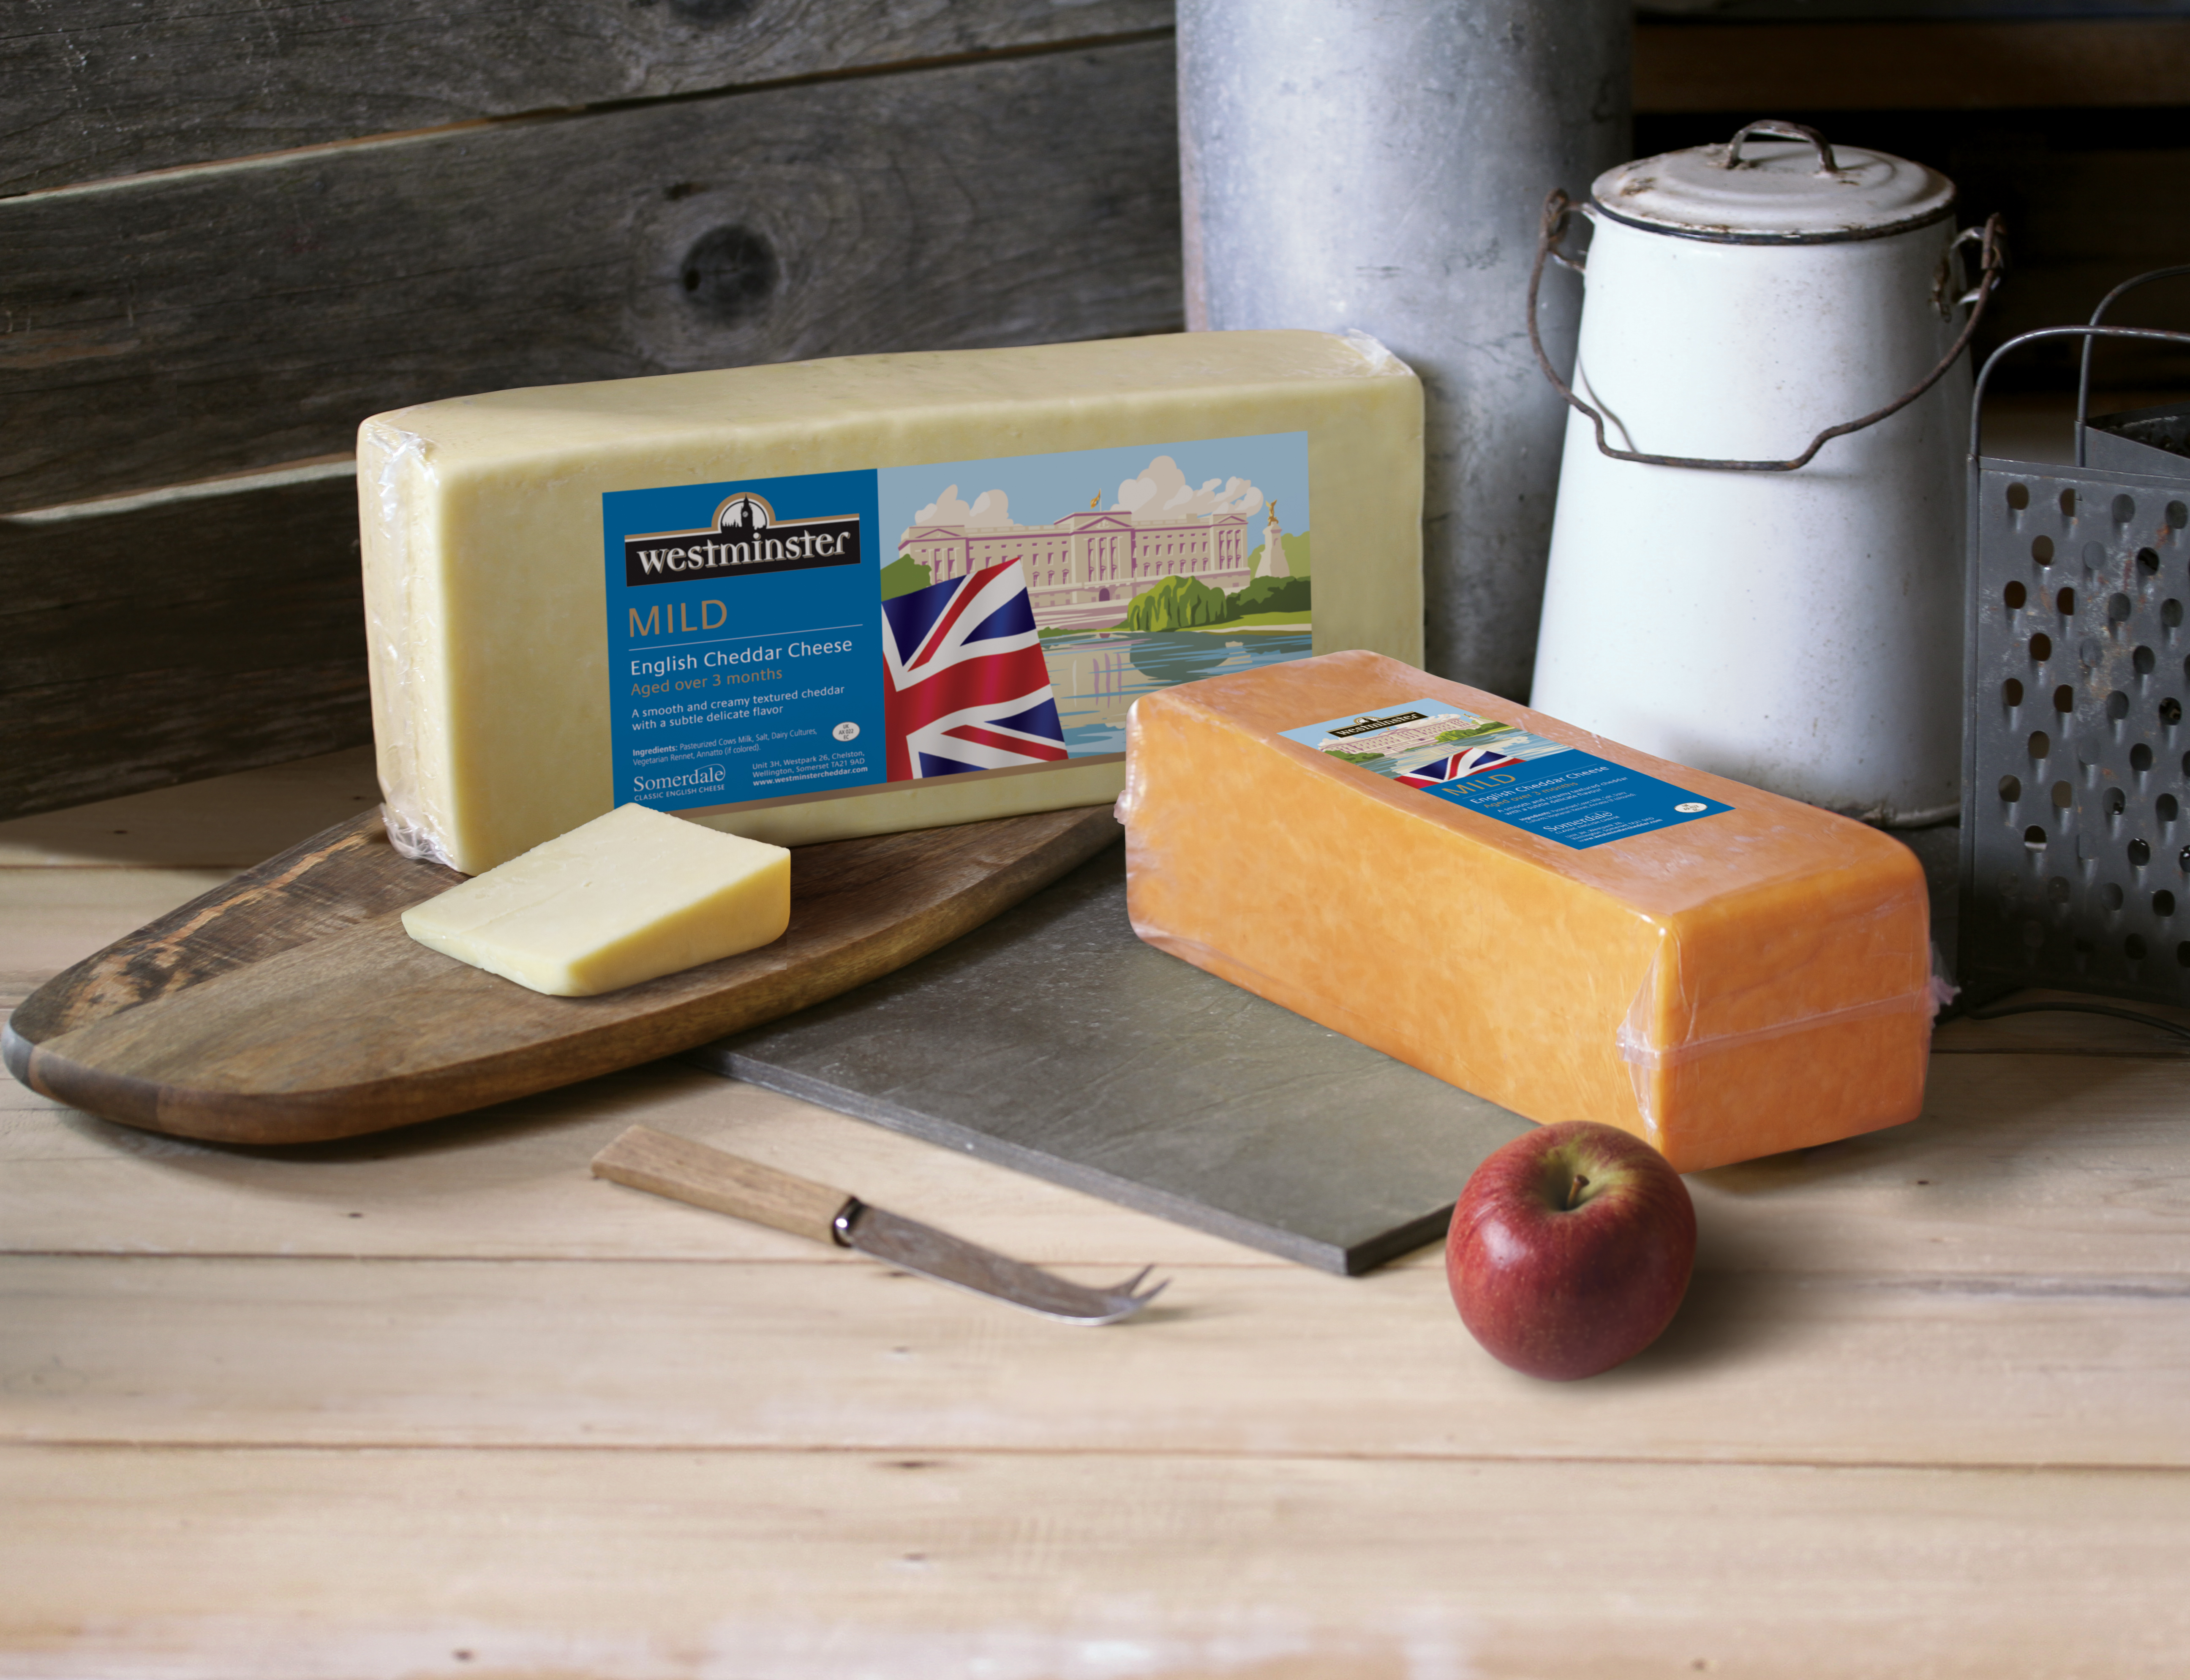 Somerdale flies the flag for British cheese in the Middle East